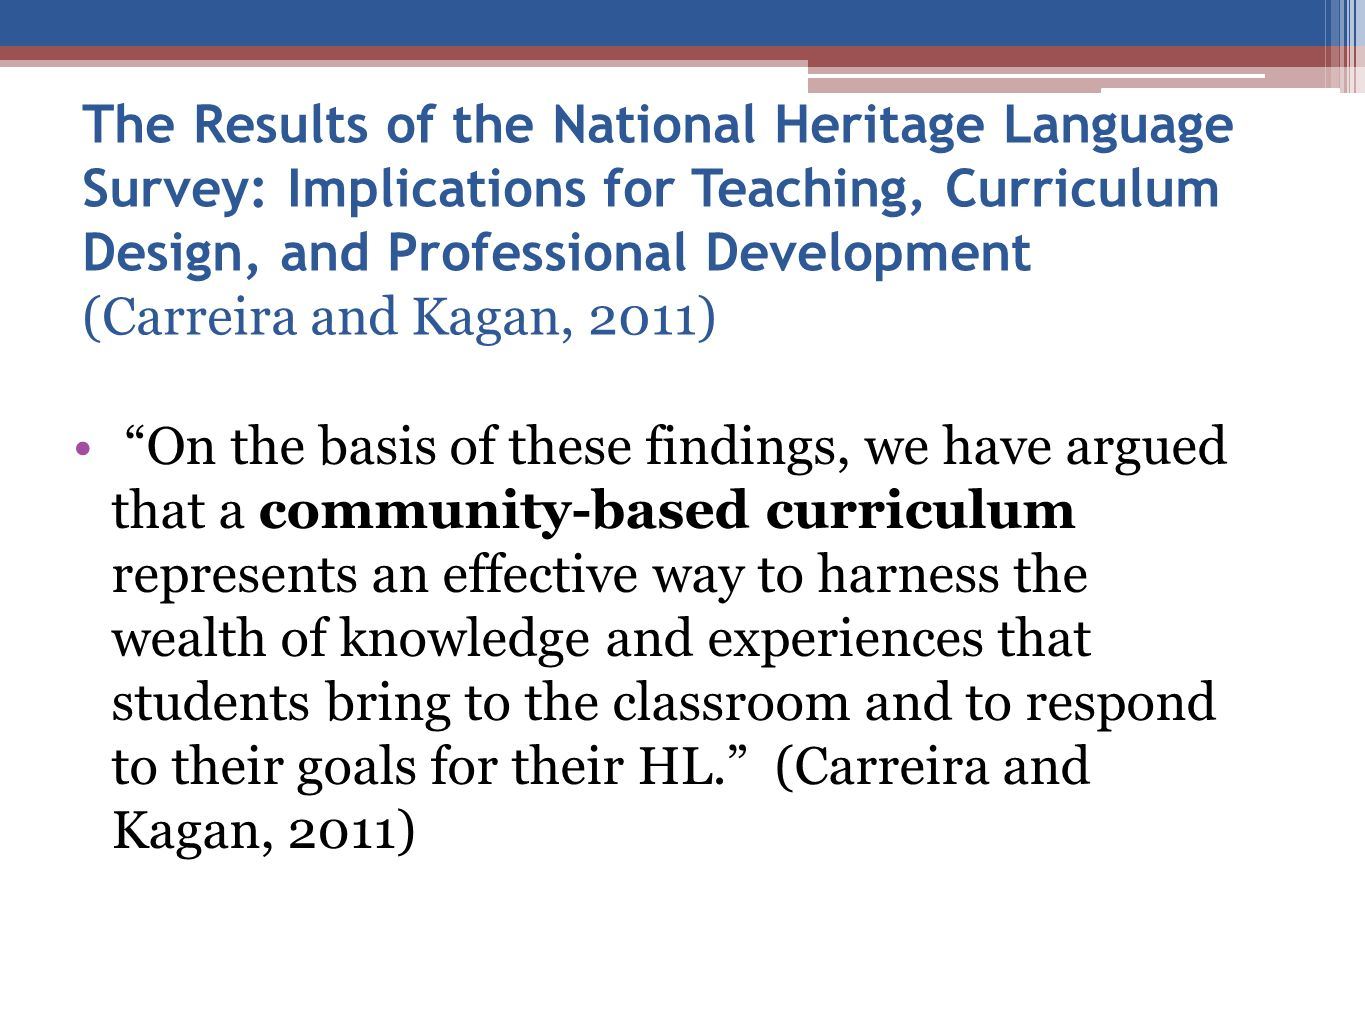 The Results of the National Heritage Language Survey: Implications for Teaching, Curriculum Design, and Professional Development (Carreira and Kagan,